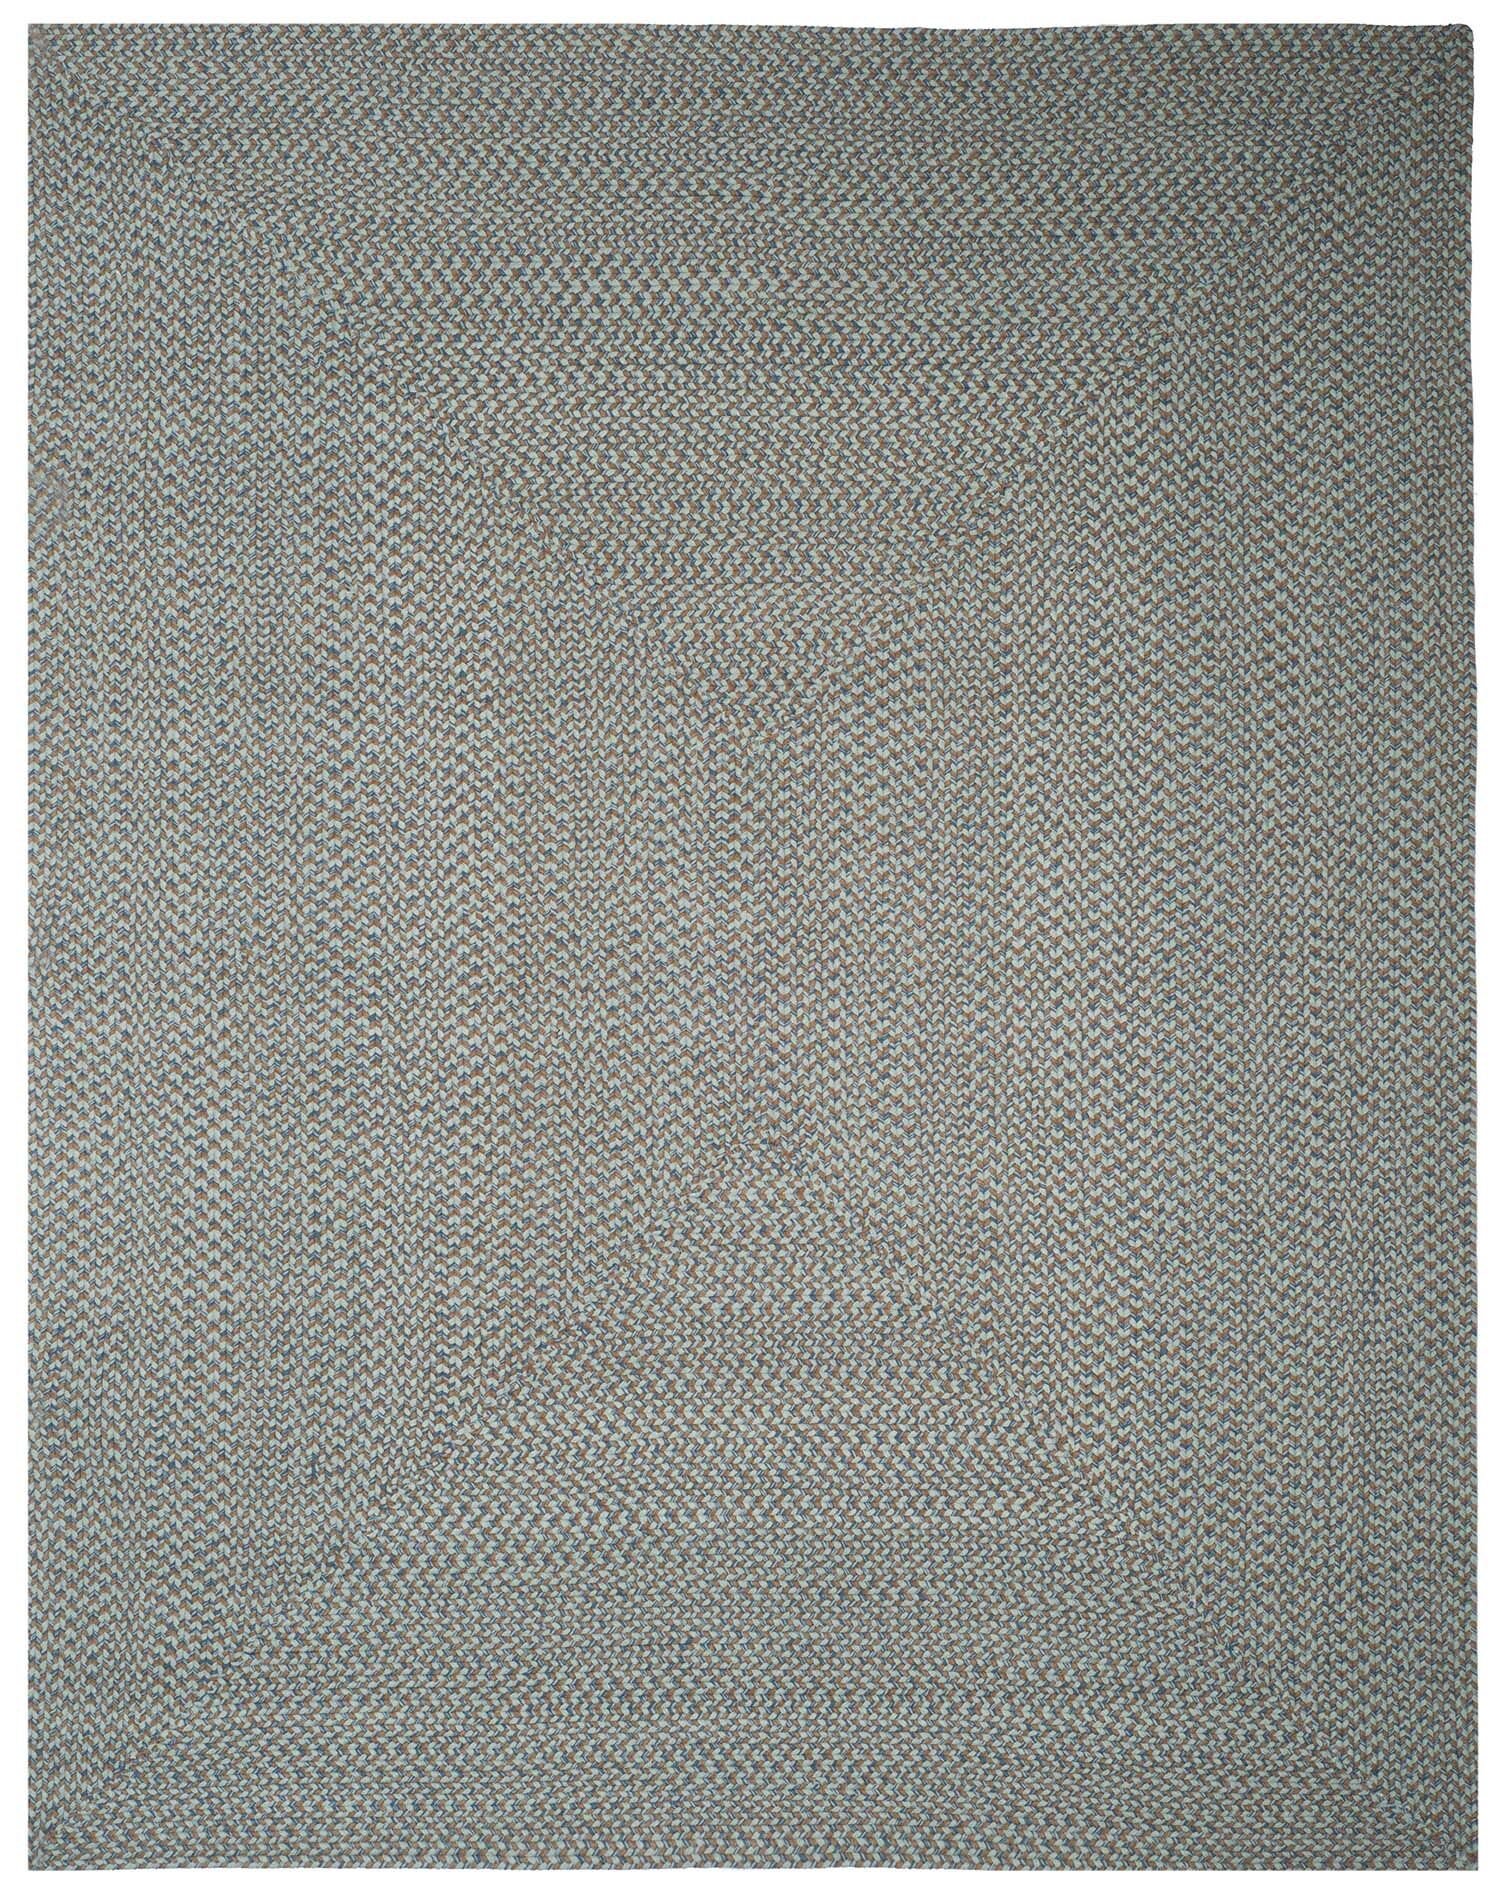 Lissie Hand-Woven Cotton Blue Area Rug Rug Size: Rectangle 9' x 12'